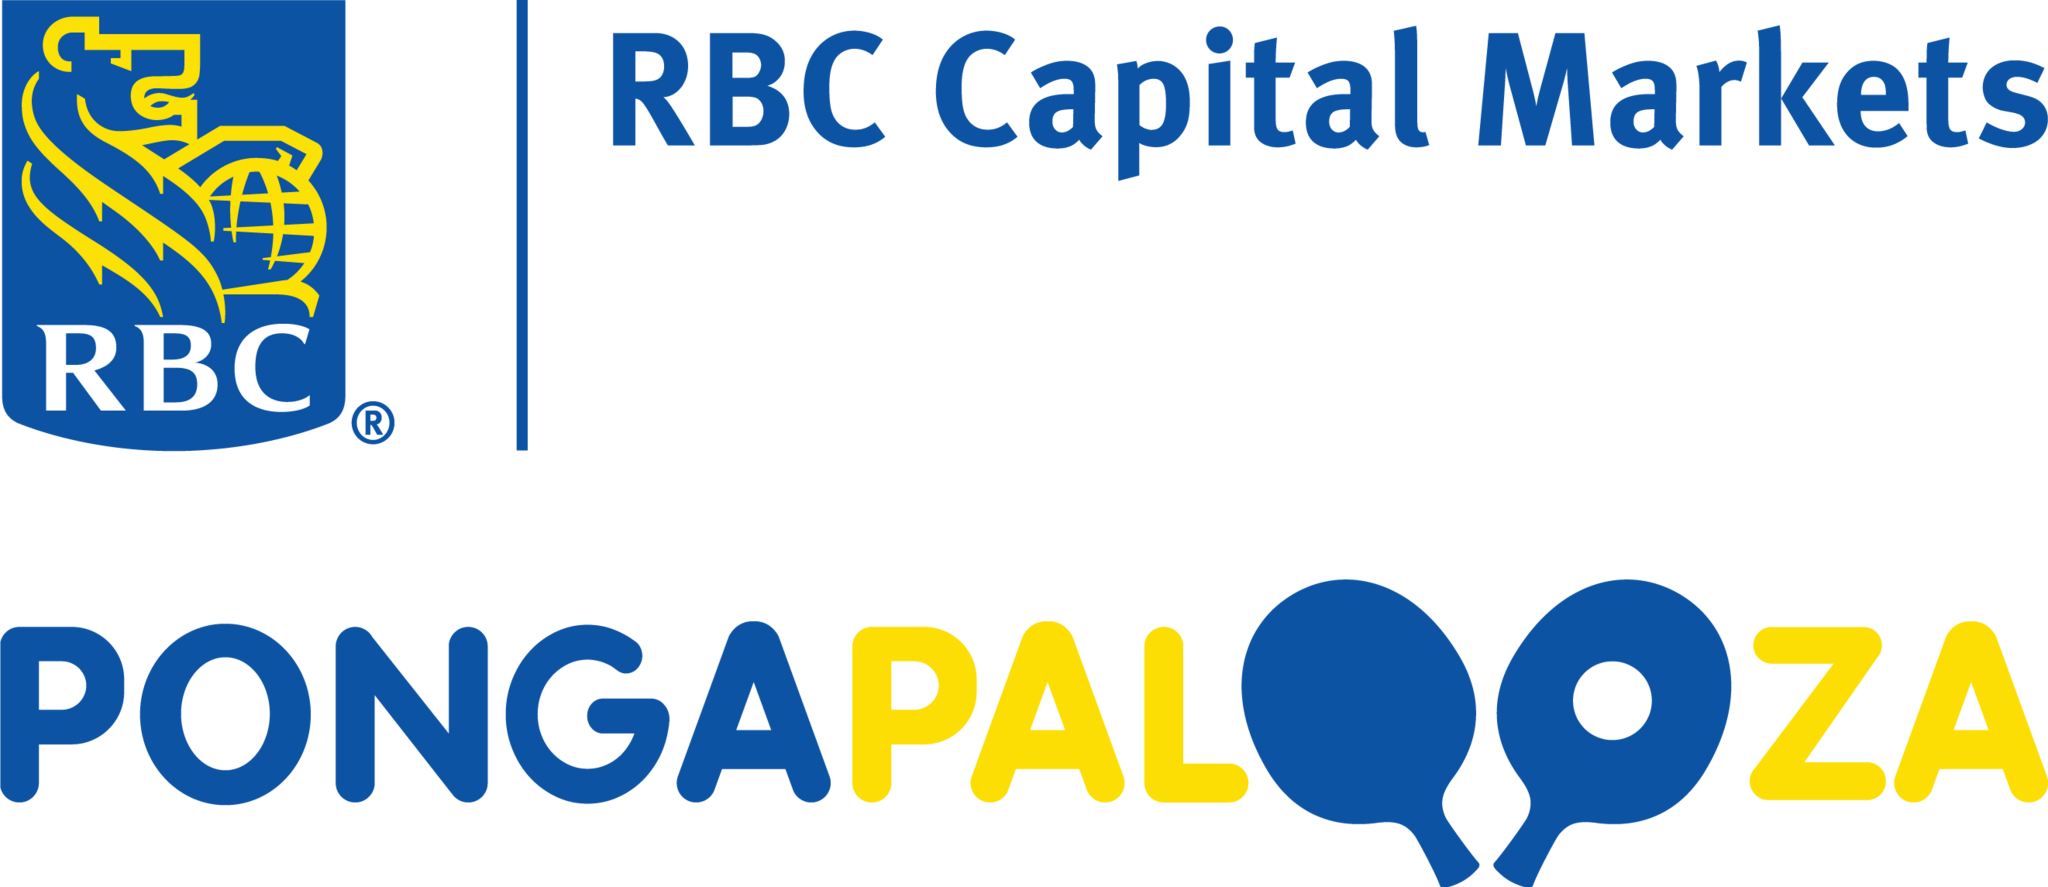 Rbc Capital Markets >> Rbc Capital Markets Pongapalooza In Support Of First Book